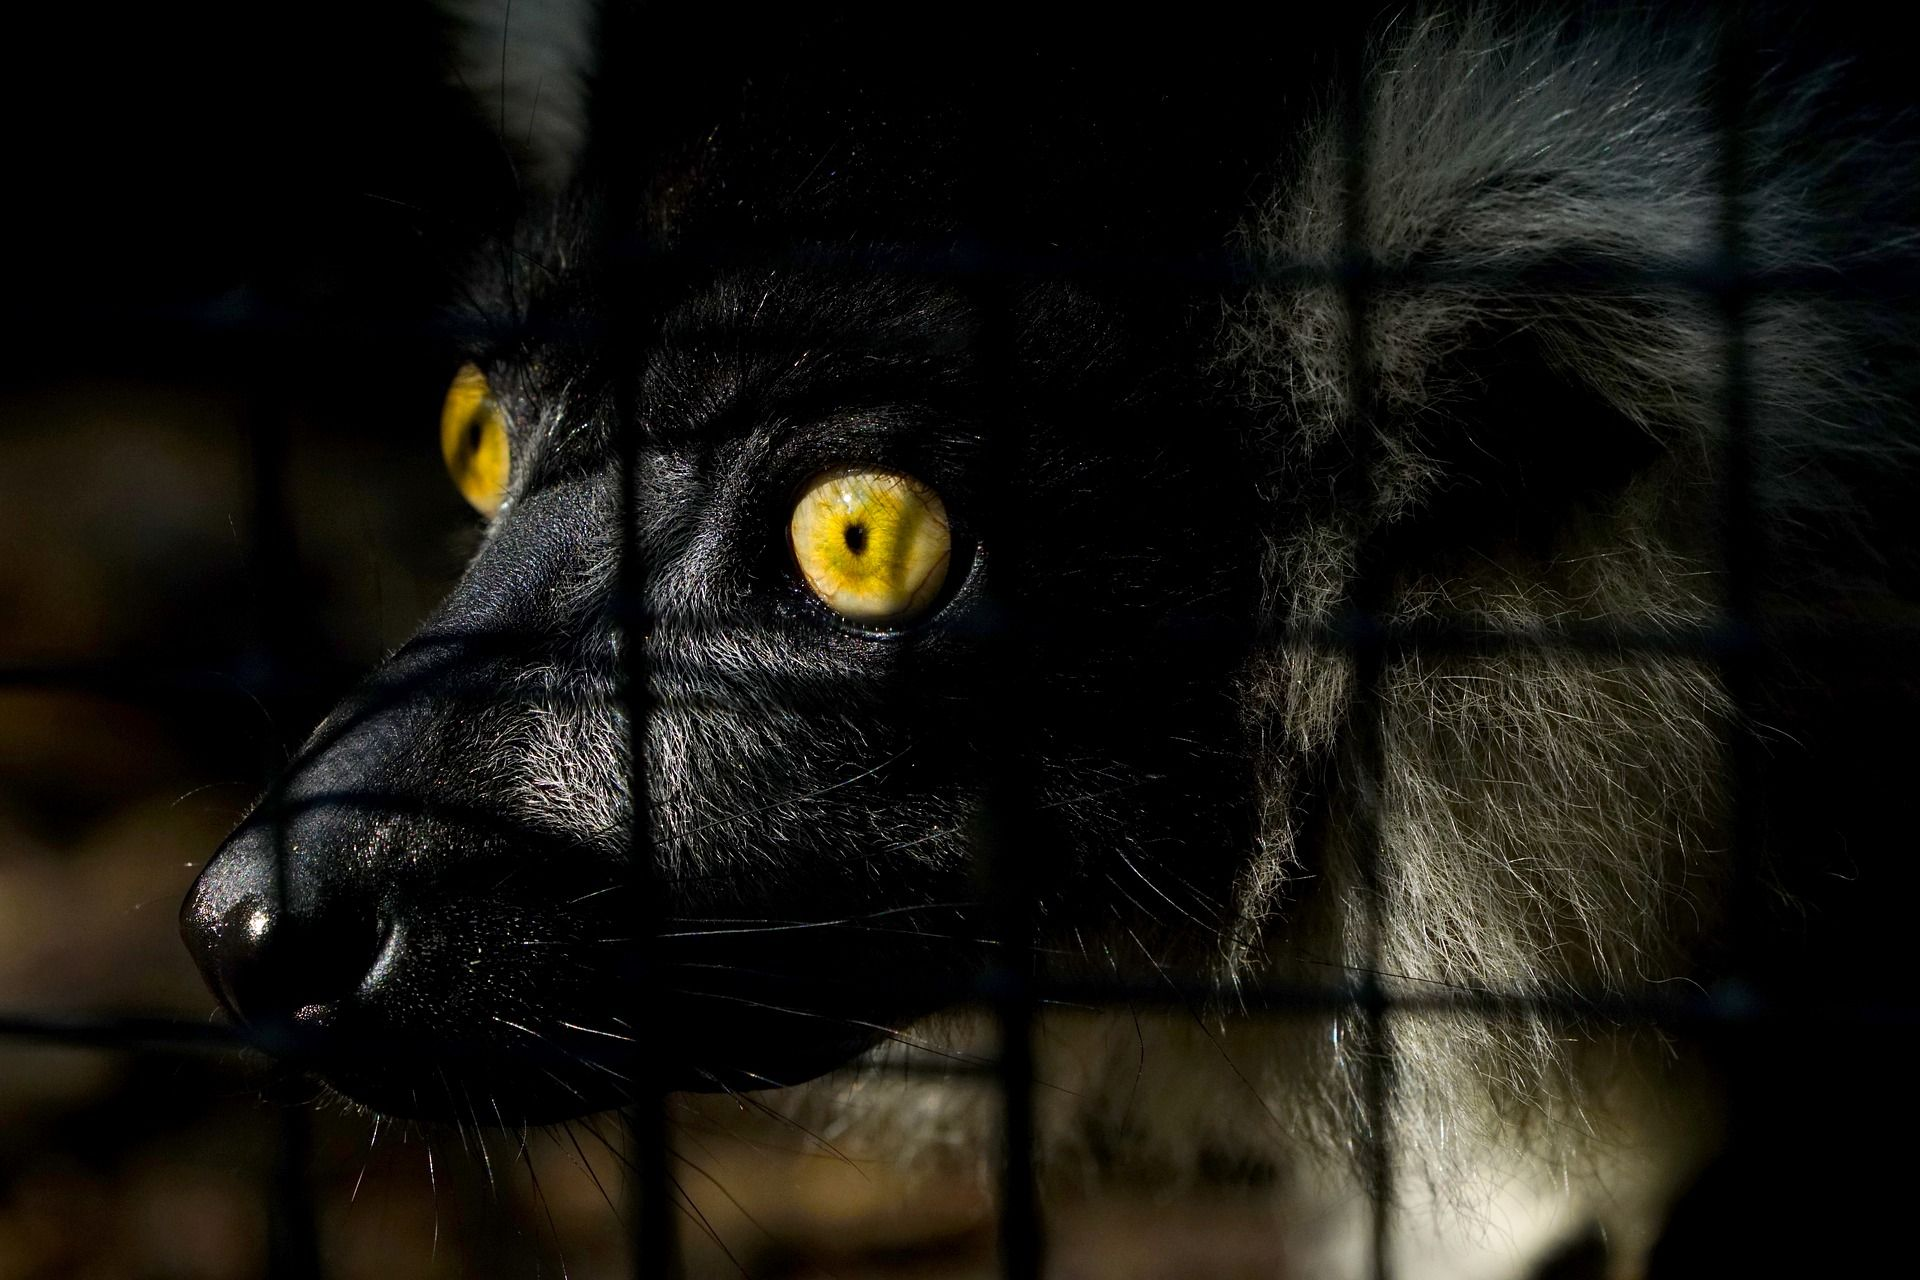 A lemur in a cage. Studies show that 95 percent of lemur species are at risk of extinction. Get involved at Lady Freethinker.